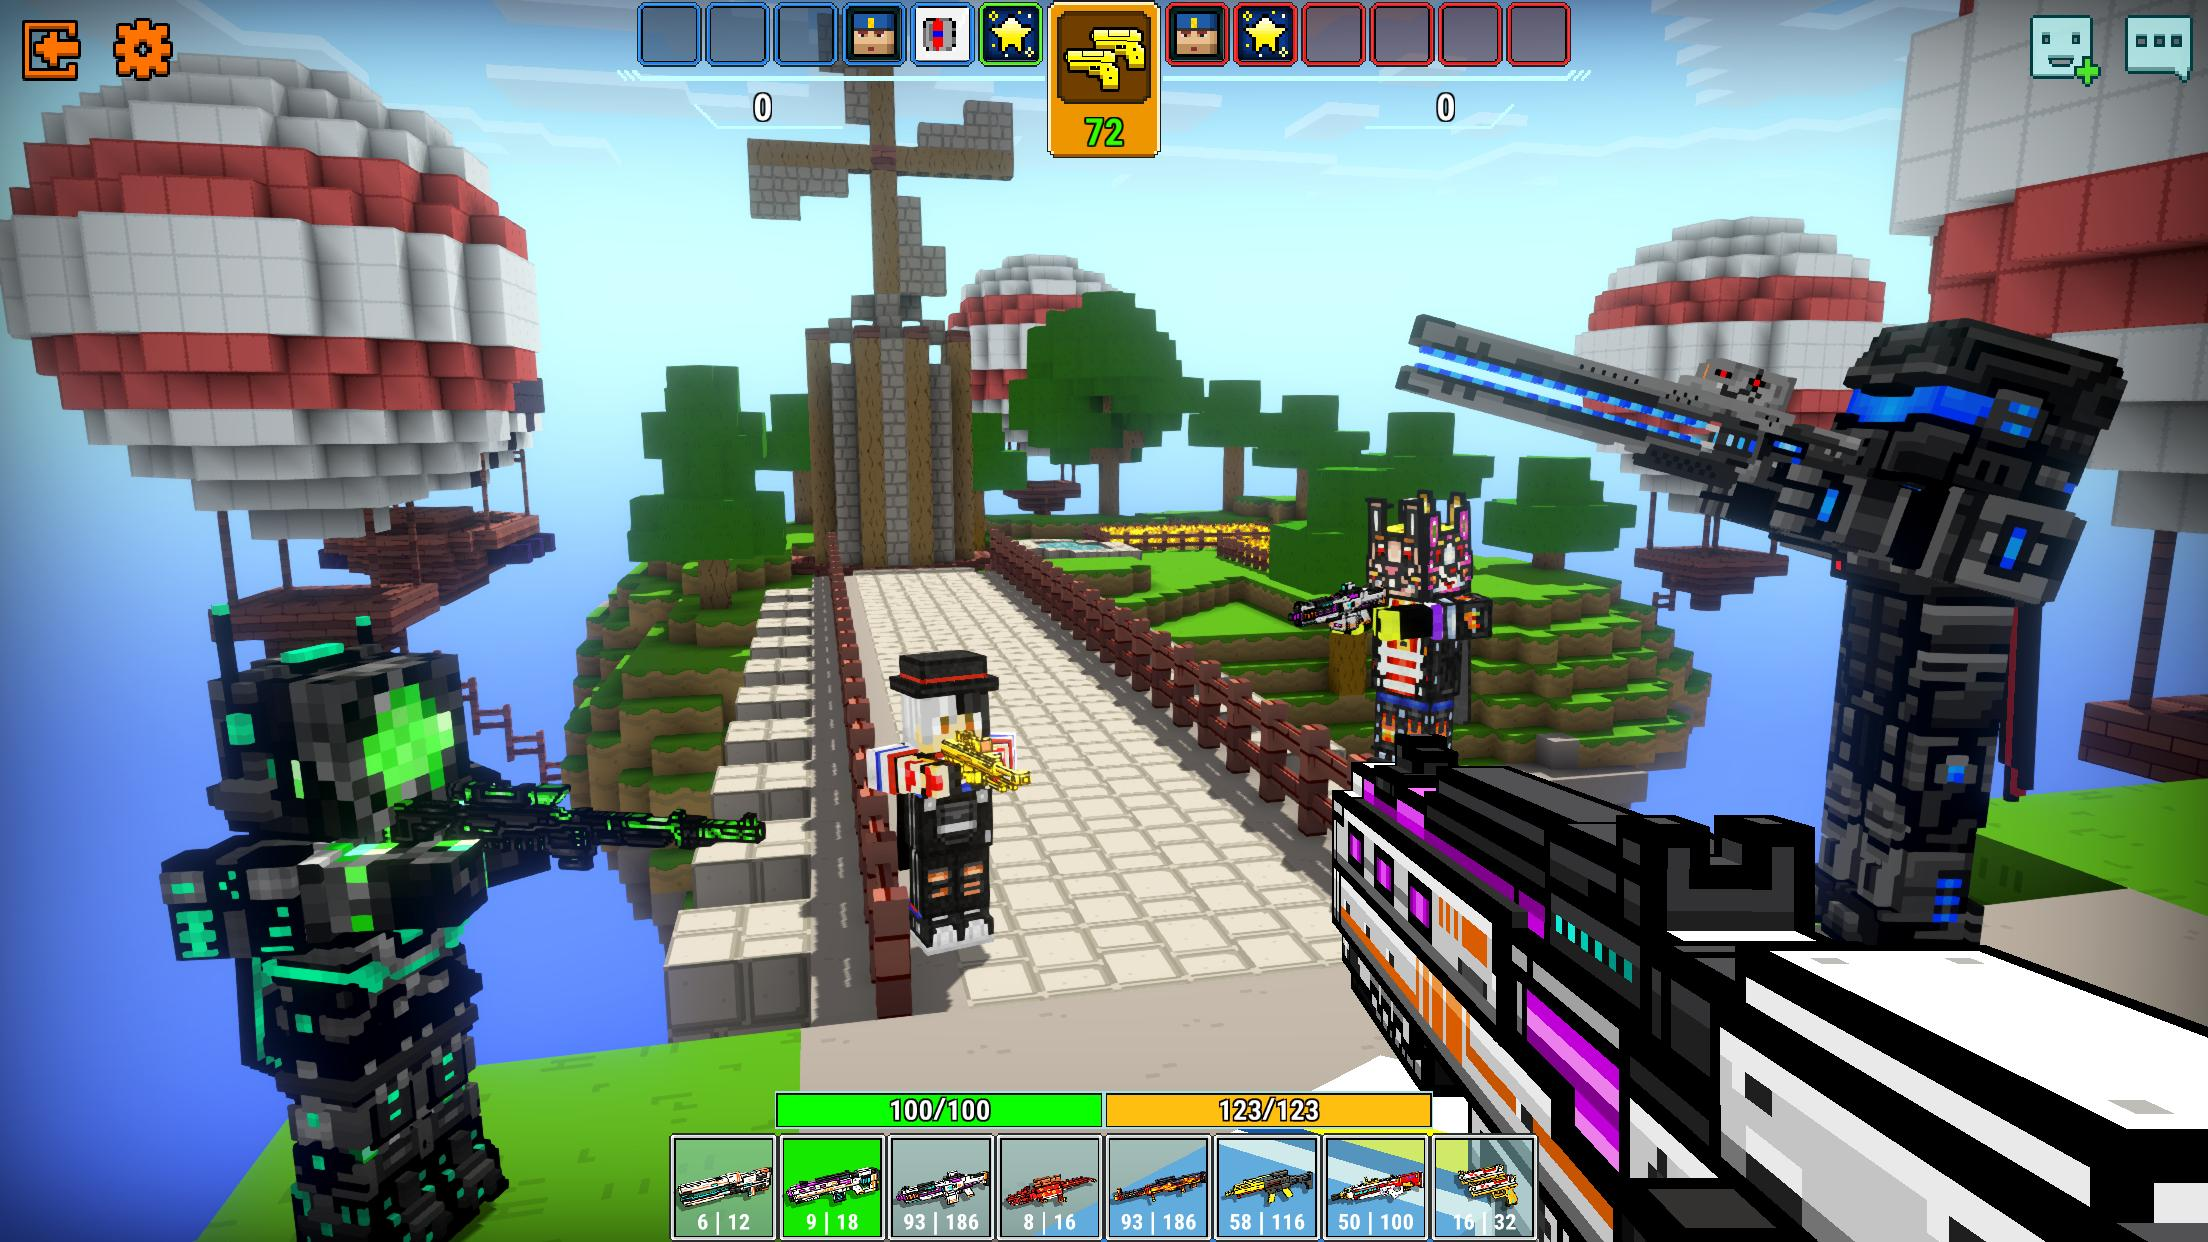 Cops N Robbers - 3D Pixel Craft Gun Shooting Games 9.8.4 Screenshot 4